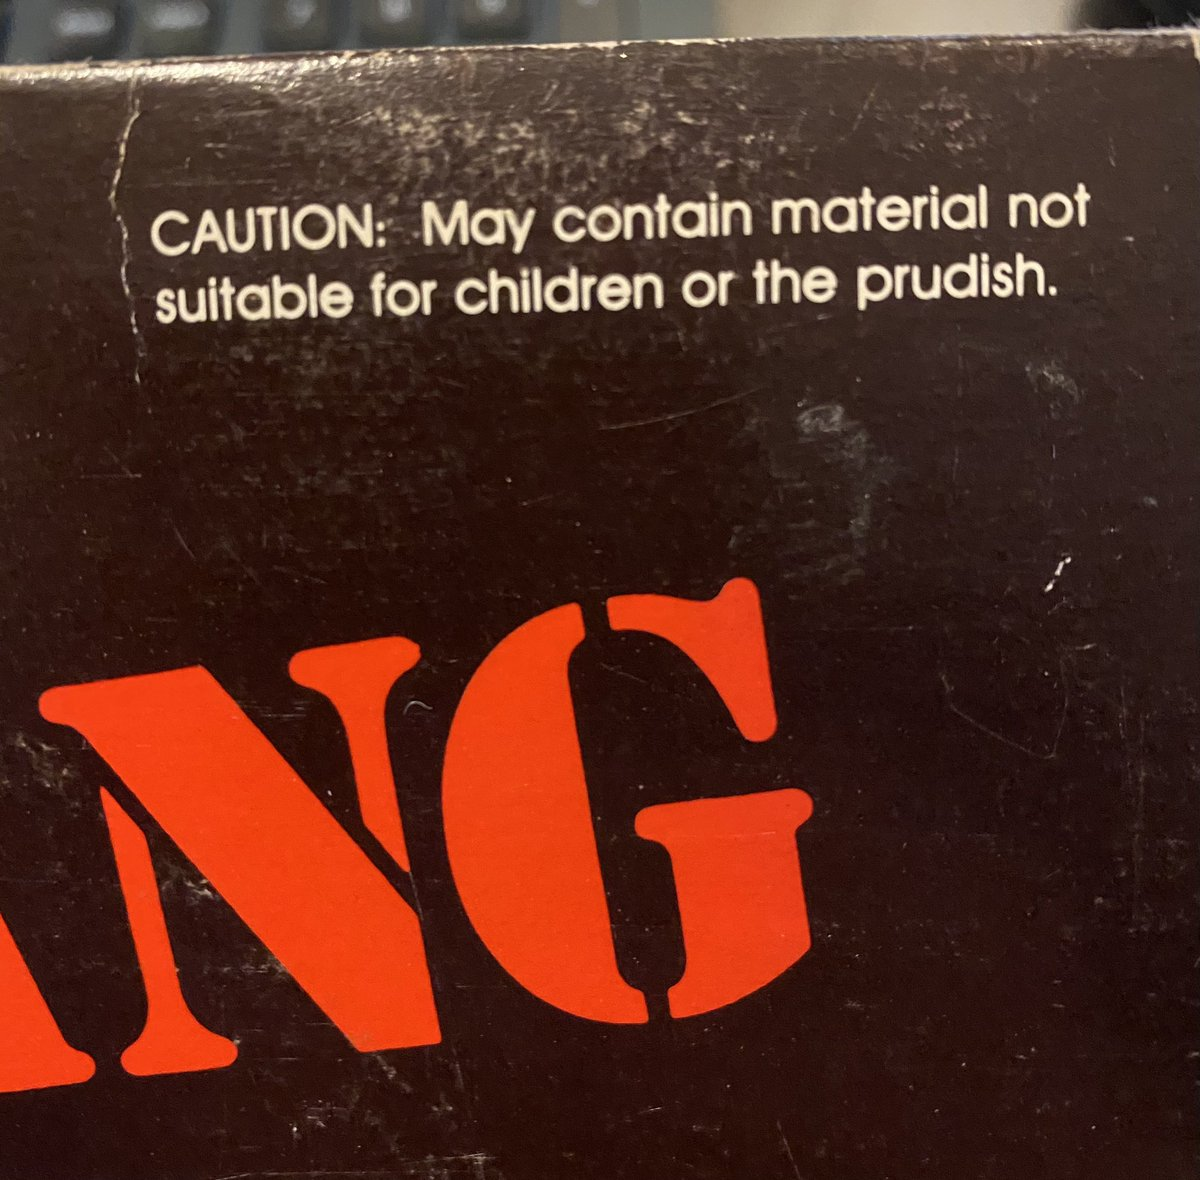 Continuing our series of record company warnings on record sleeves.   This actually works for the #VinylCollective as a whole!  I'm playing it tonight. We're live at 6pm on @BBCRadioScot and @BBCSounds!  #FridayNightIsVinylNight #GrantStottsVinylCollective #NotForThePrudish